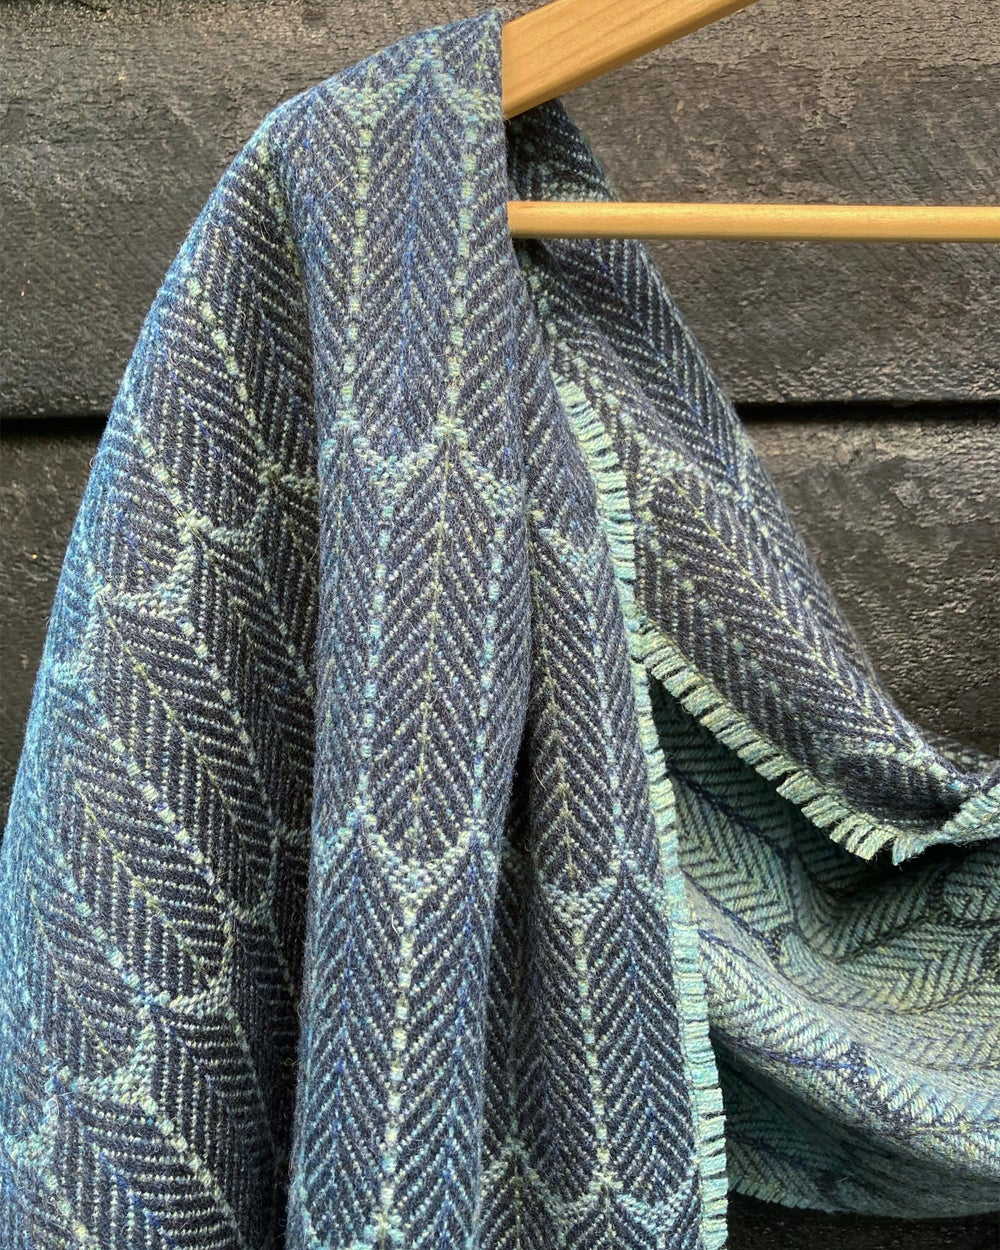 Image of Indigo & Eucalyptus 'Feathers' shawl